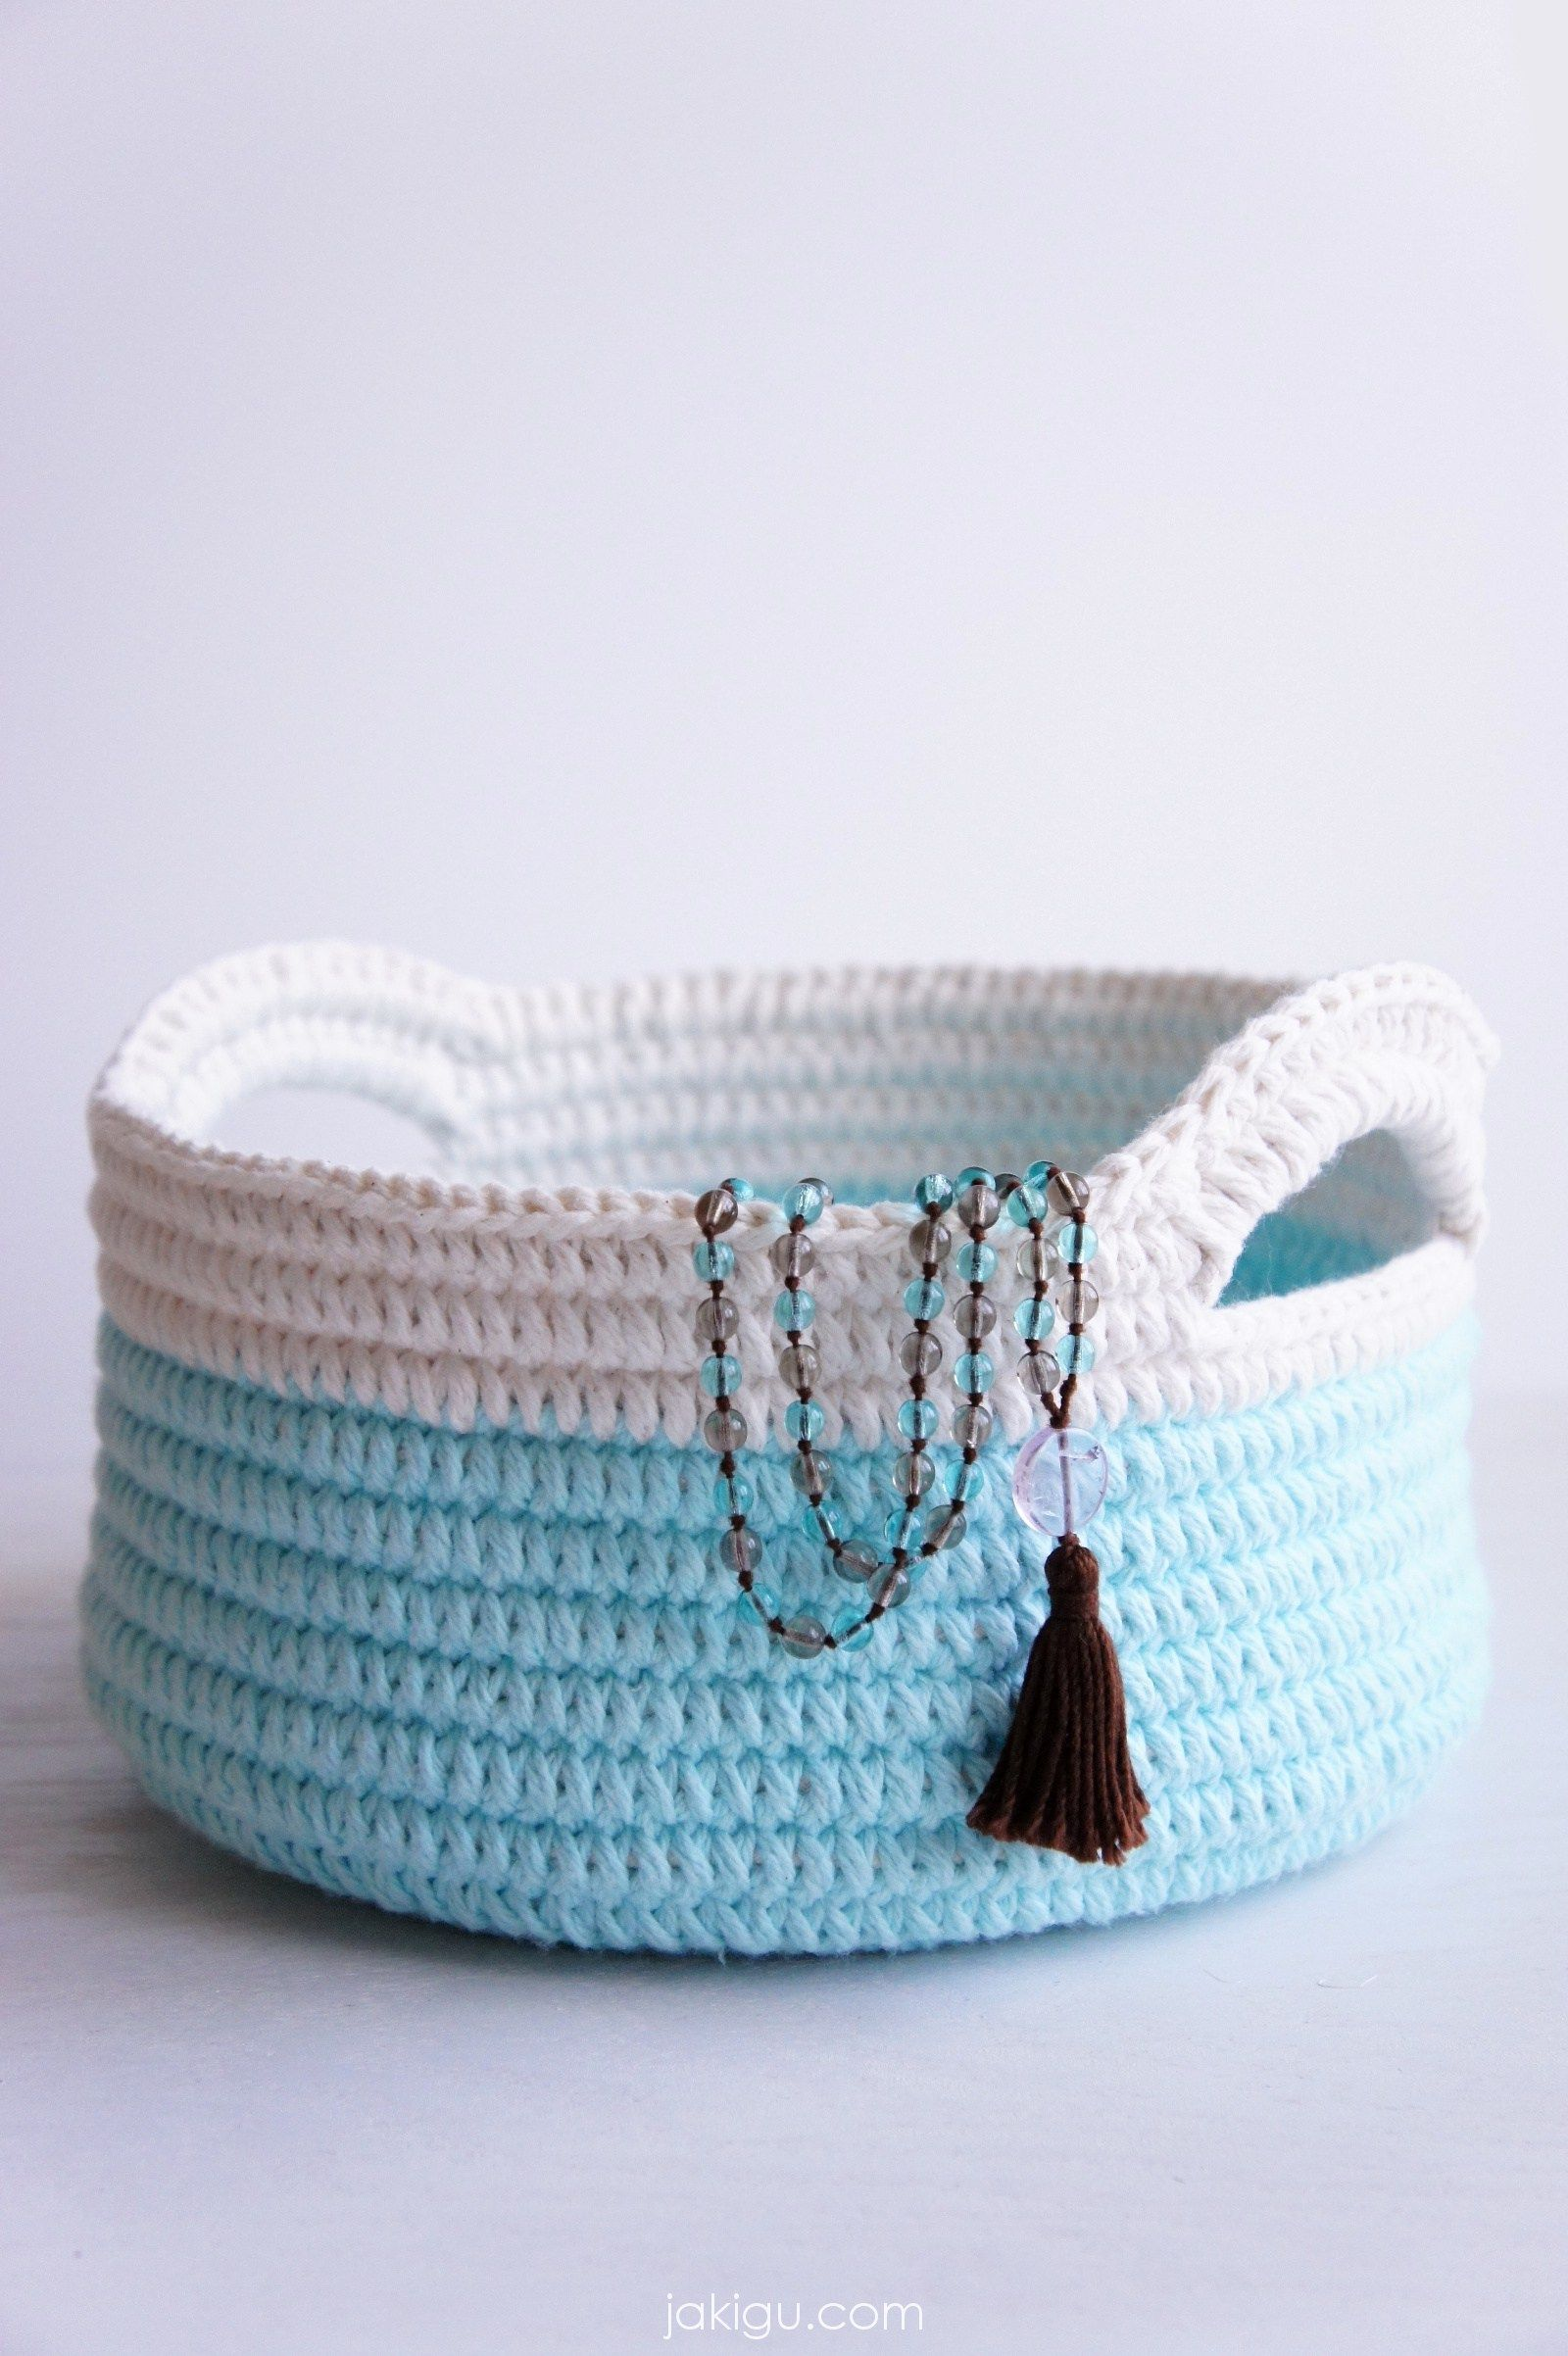 Pattern preview for simple yet durable stacking crochet baskets with ...